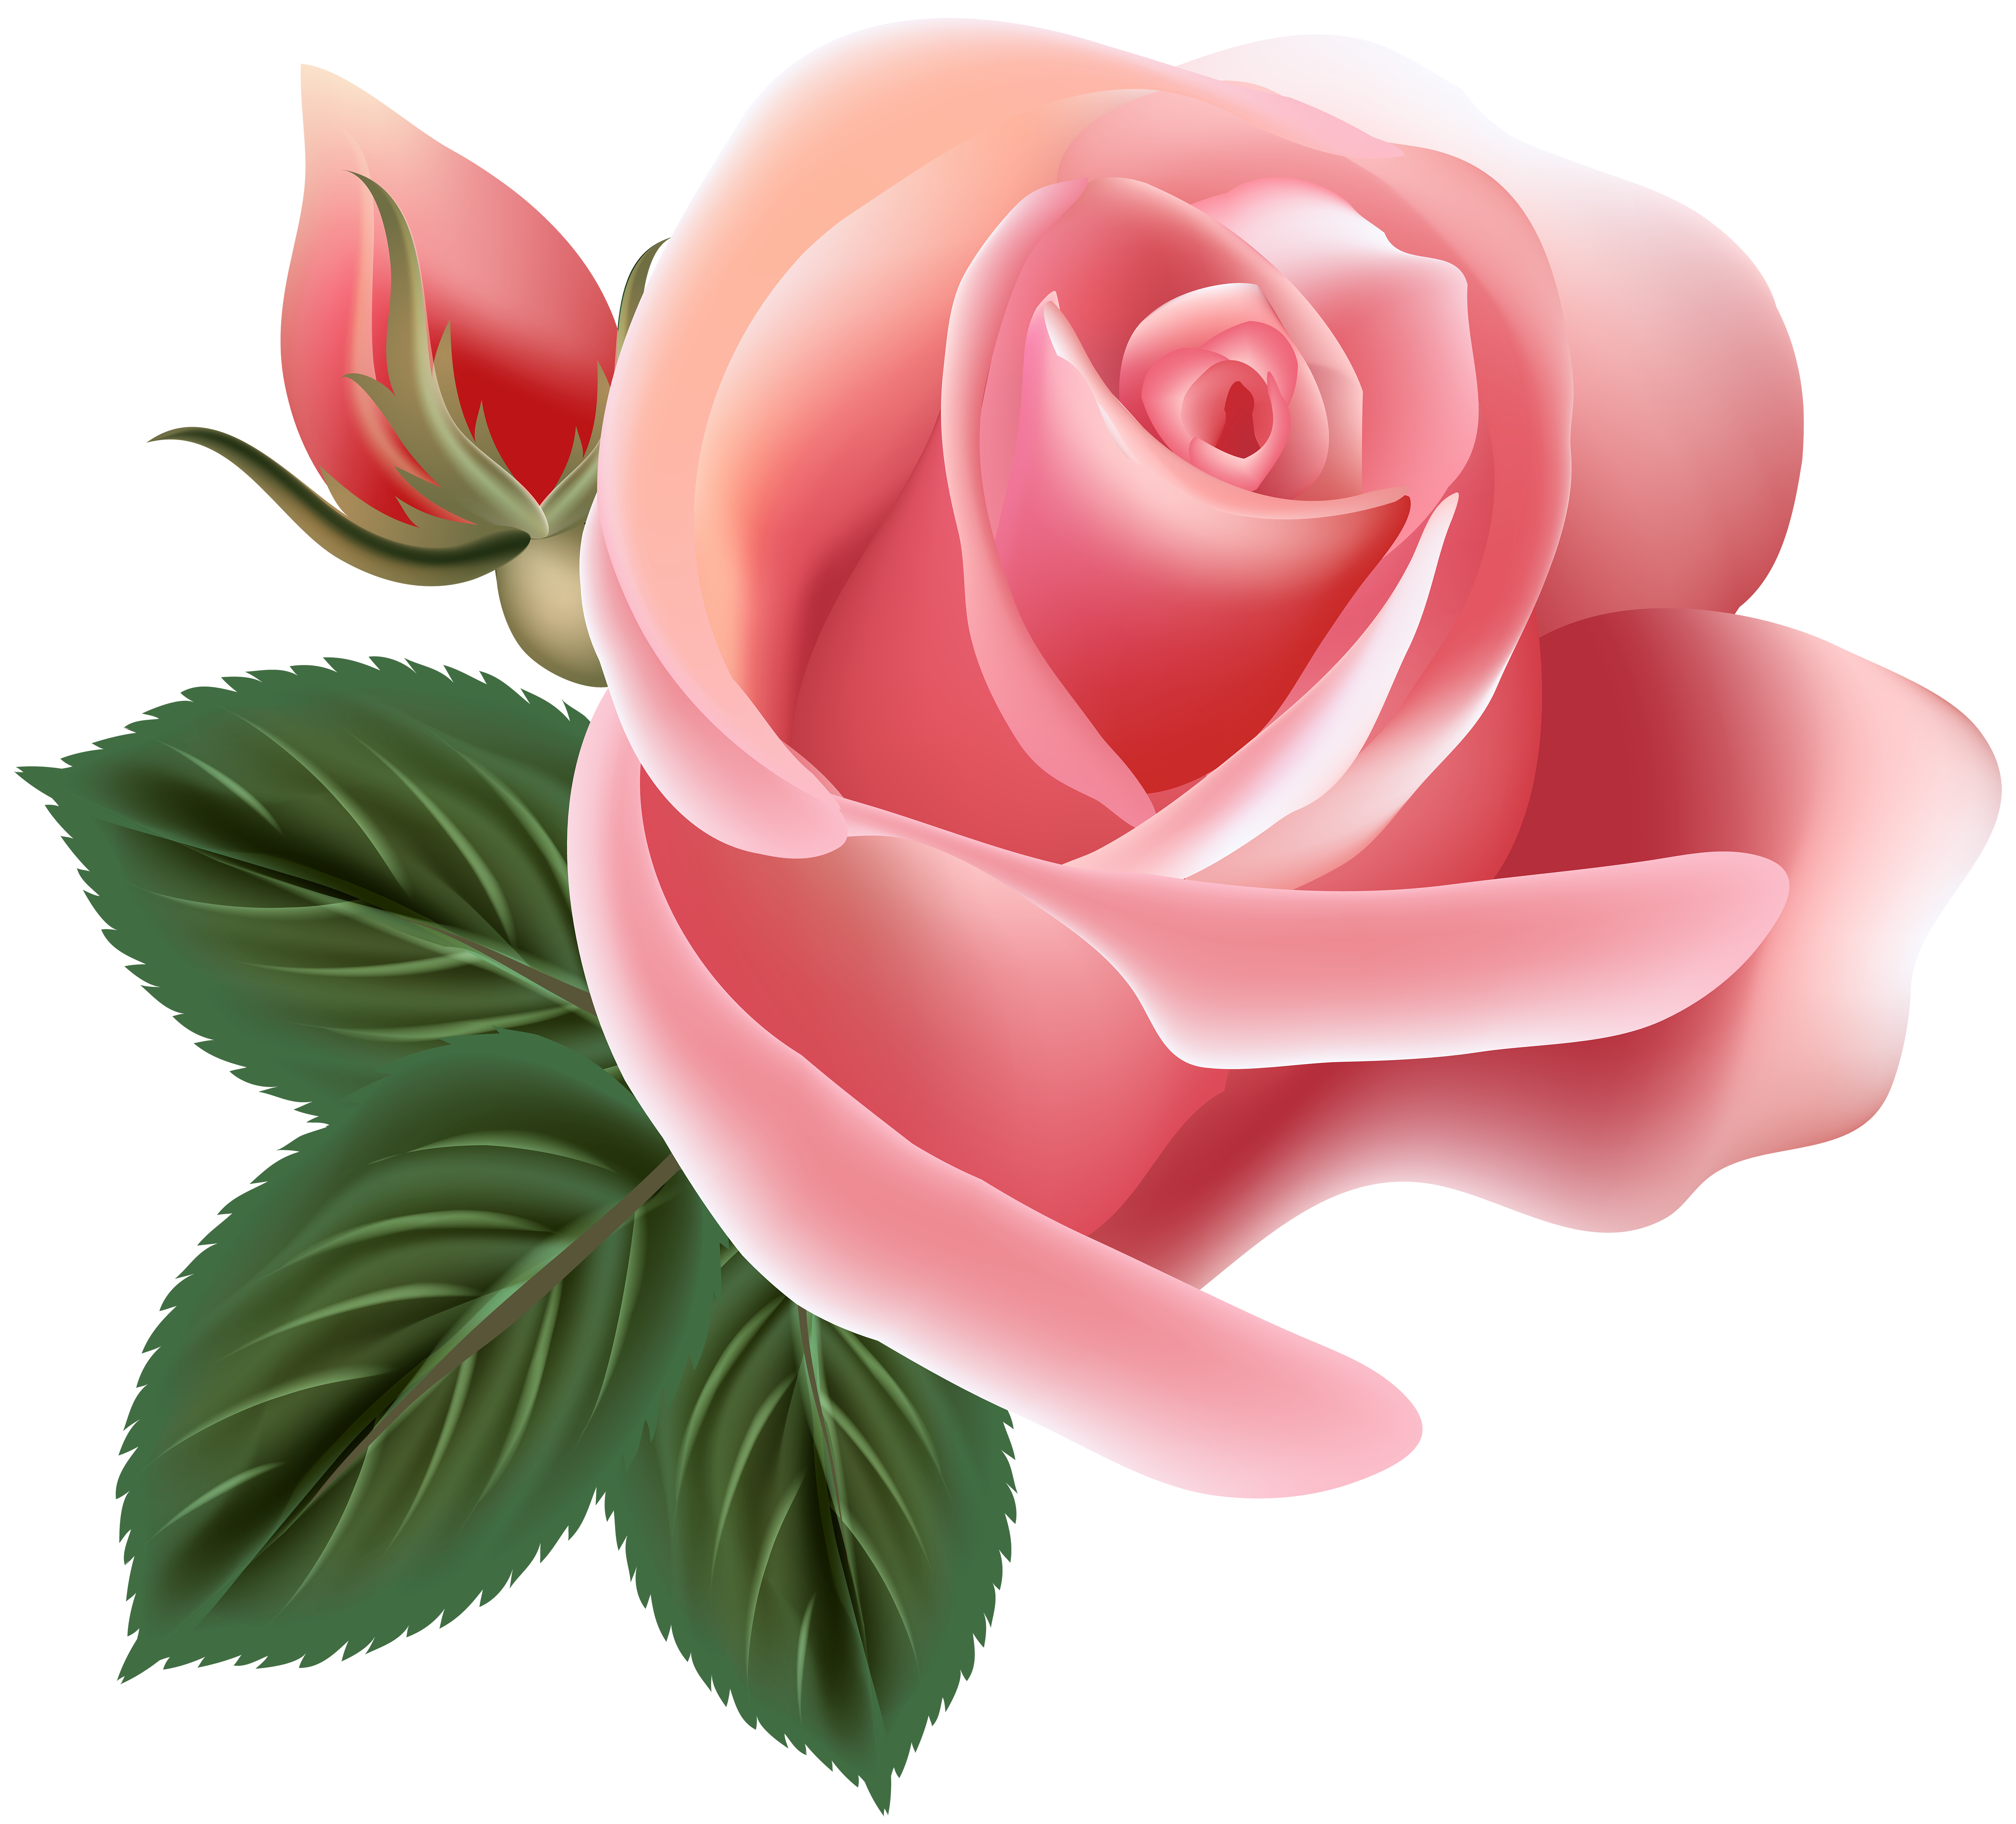 Pink Rose Clip Art Png Image Flower Clipart Flower Art Flower Painting